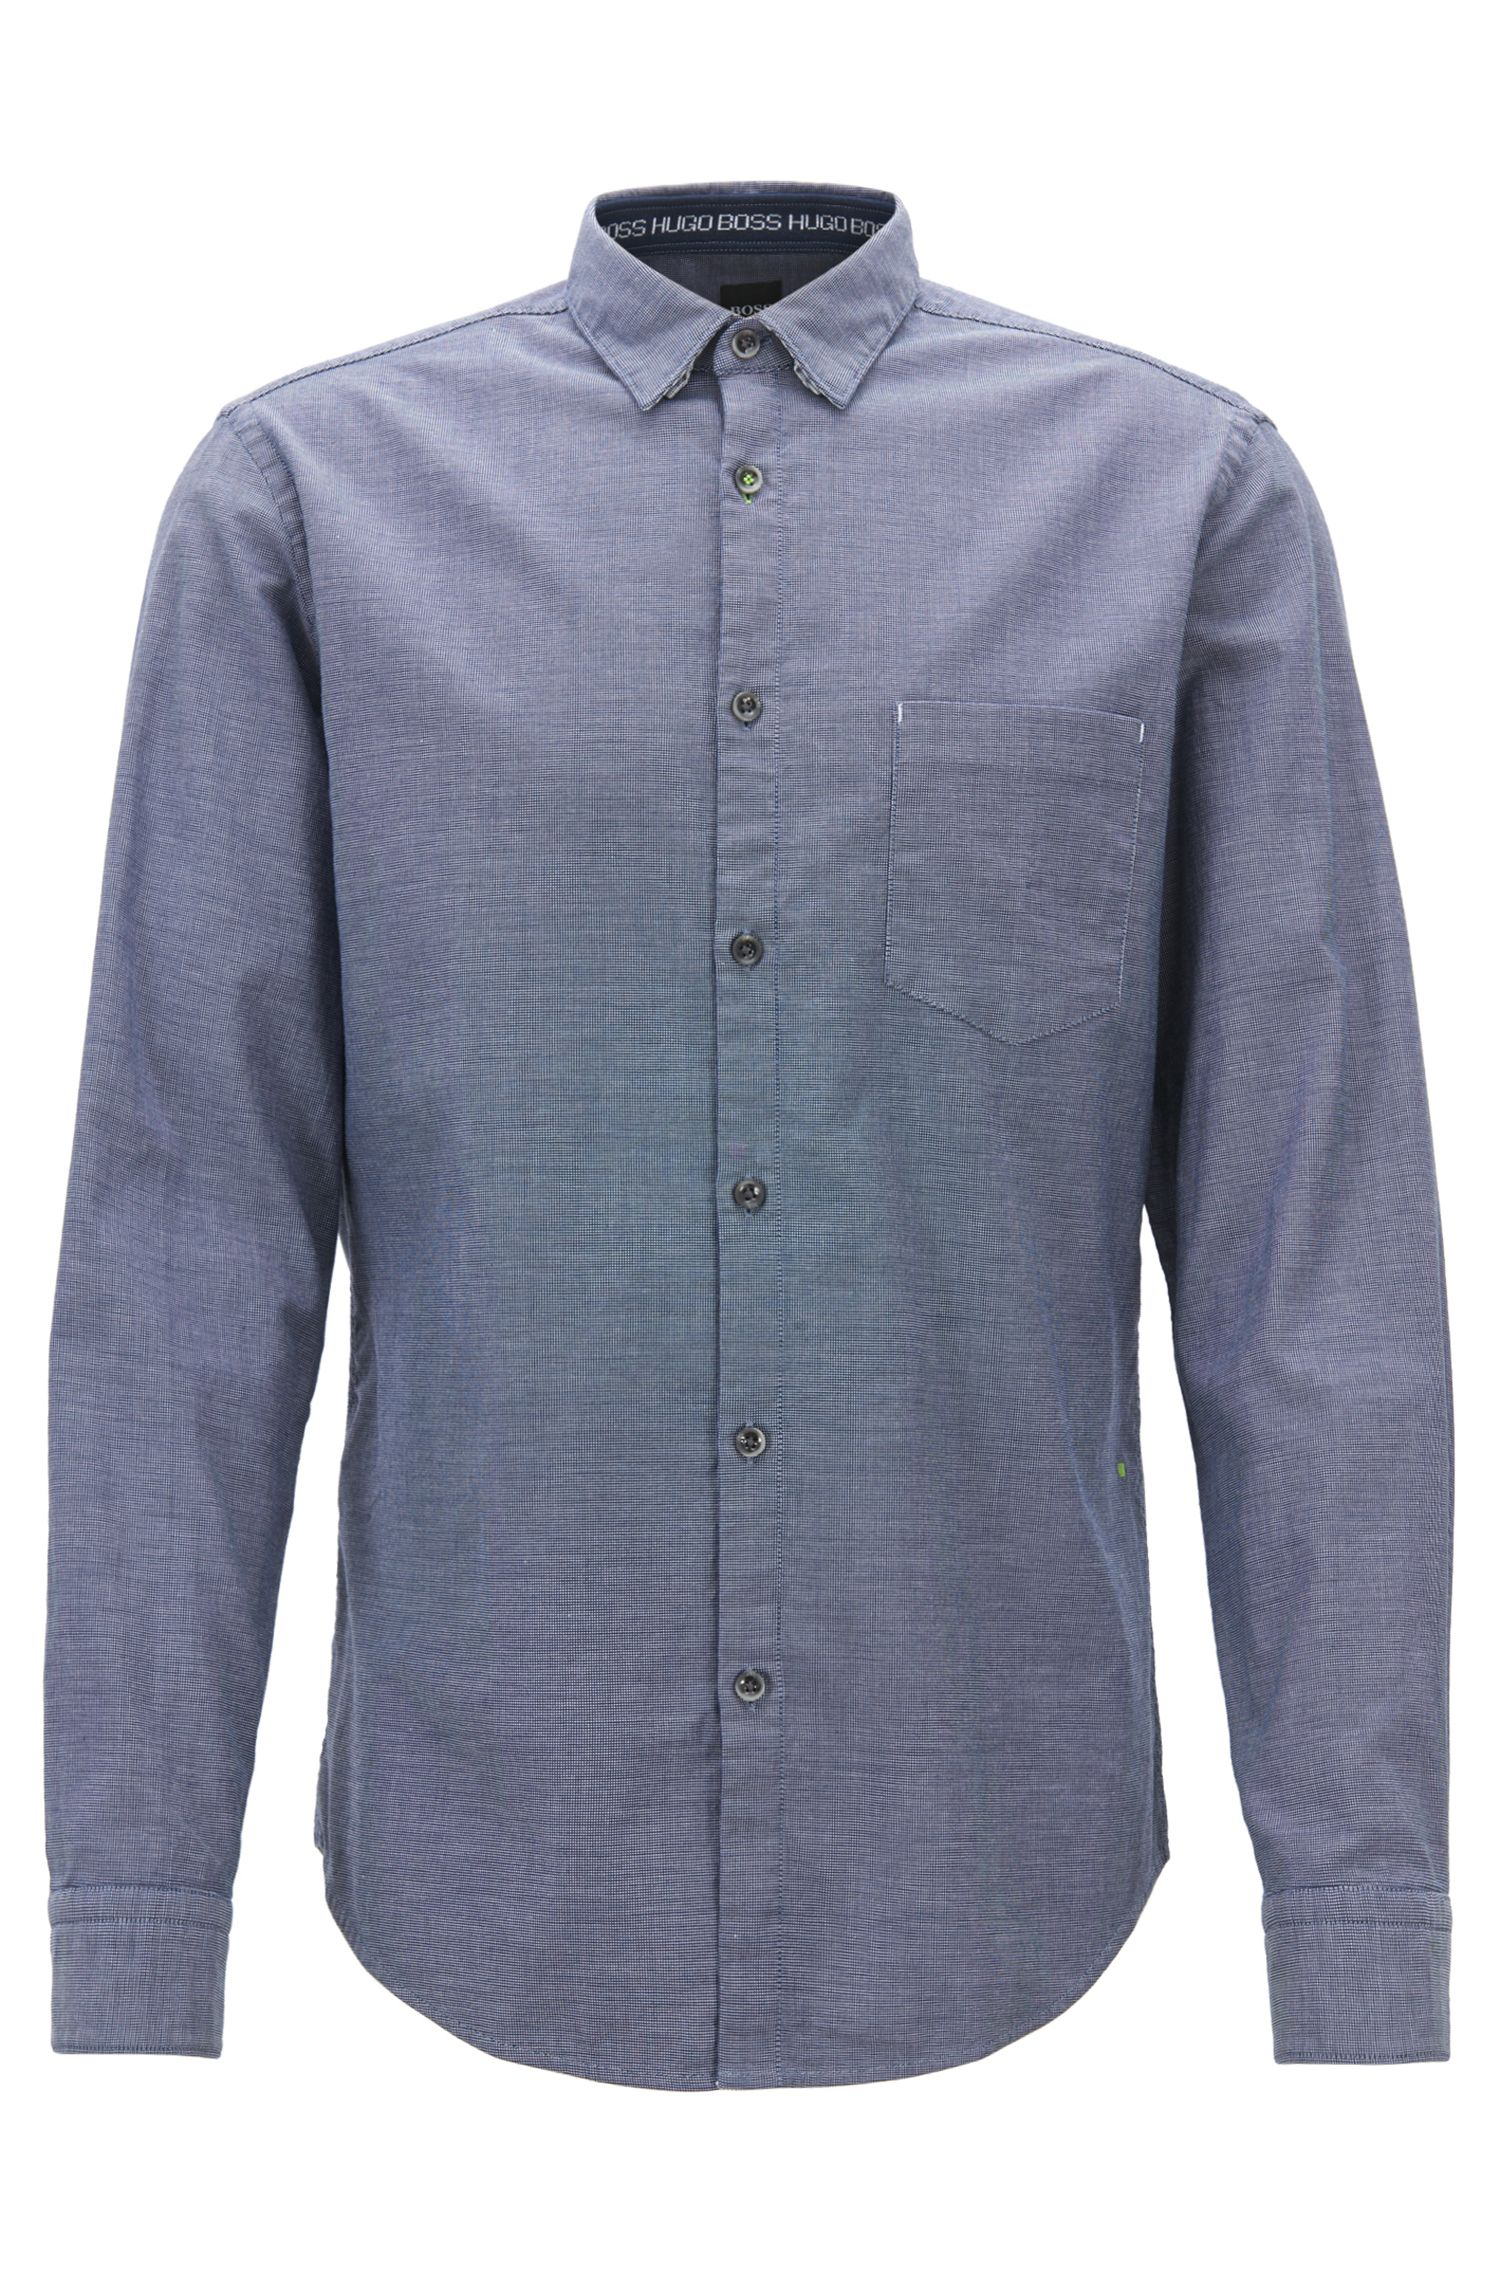 Regular-fit shirt in salt-and-pepper Oxford stretch cotton